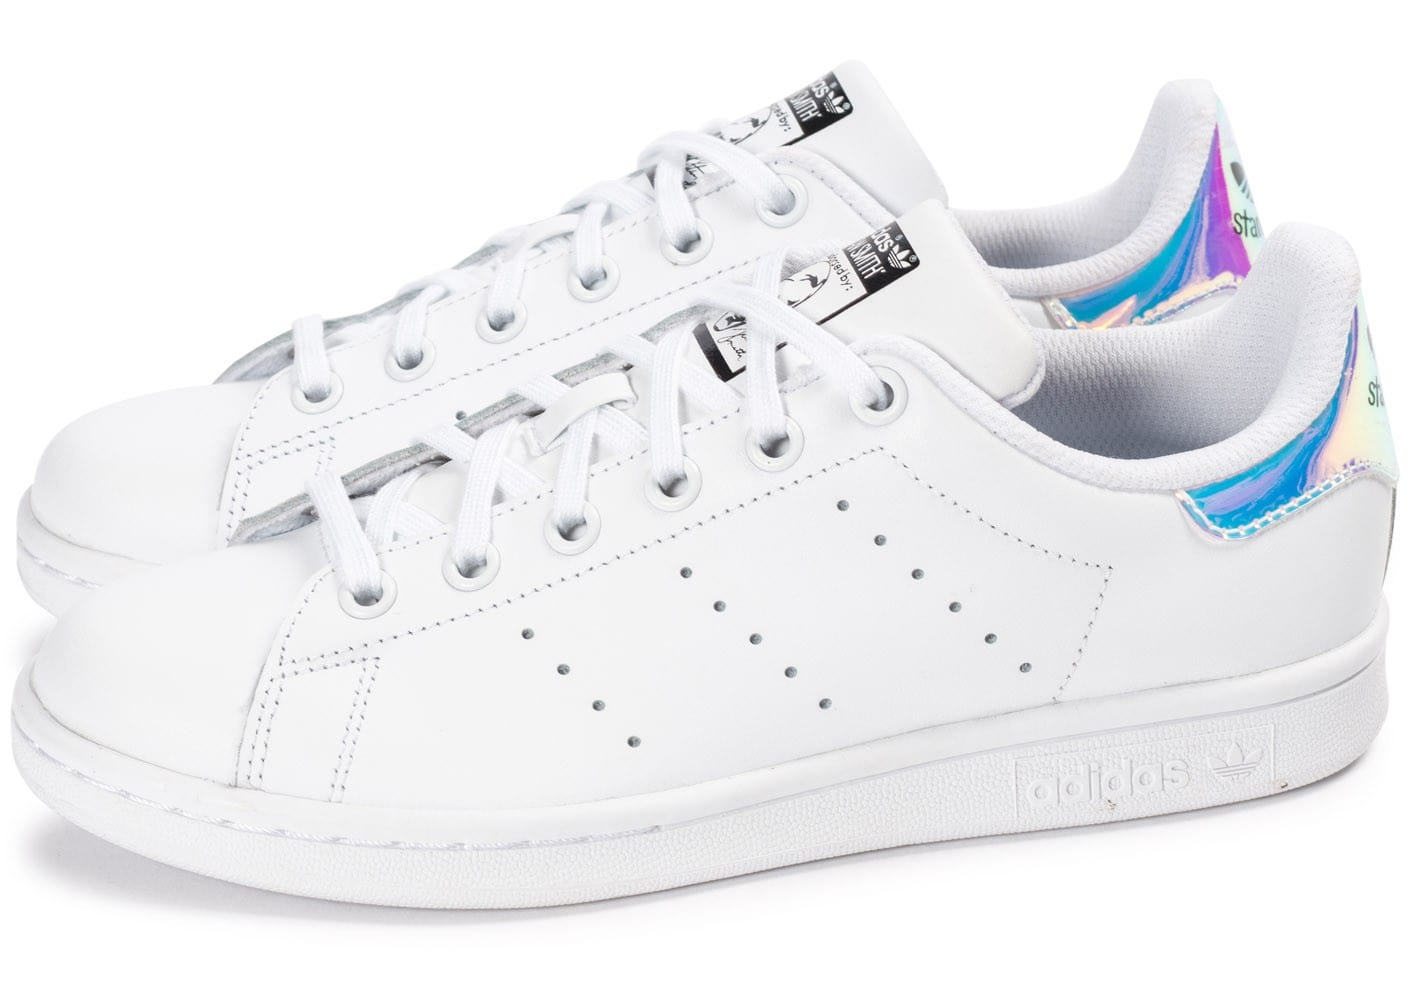 Adidas Stan Chaussures Smith Iridescente Blanche Chausport QdtCxBhrso